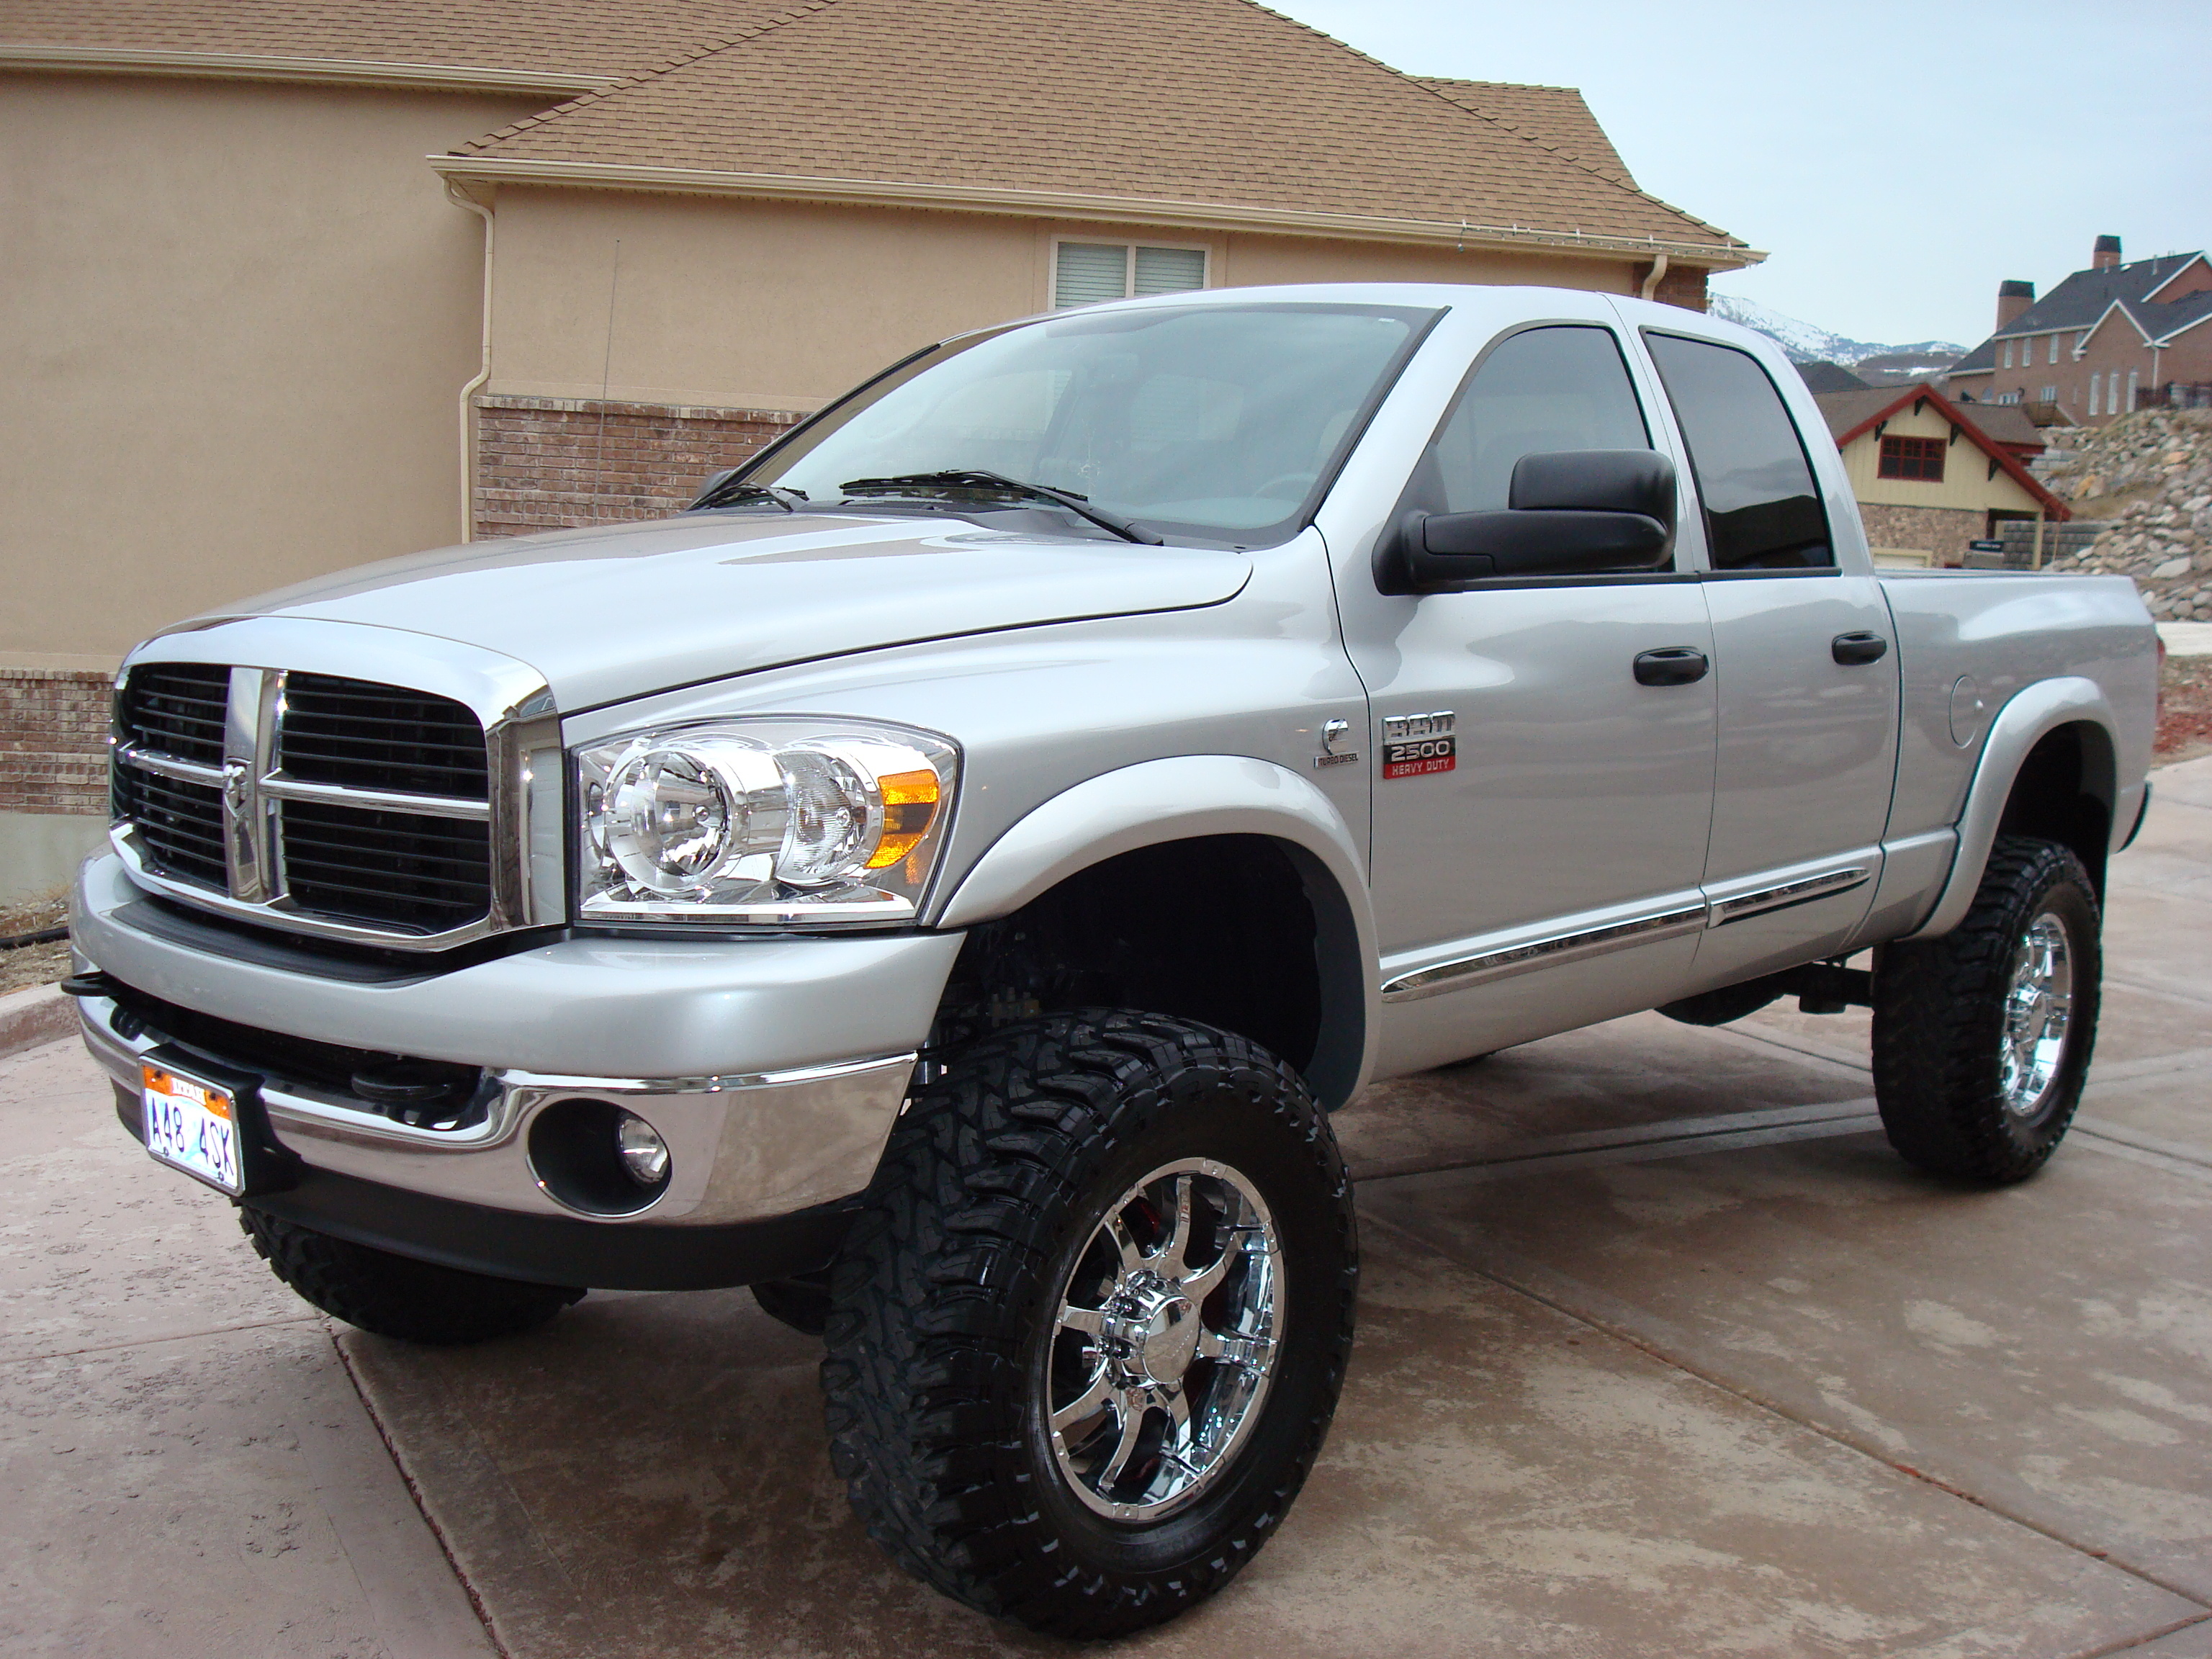 cumminup 2007 dodge ram 1500 regular cab specs photos modification info at cardomain. Black Bedroom Furniture Sets. Home Design Ideas